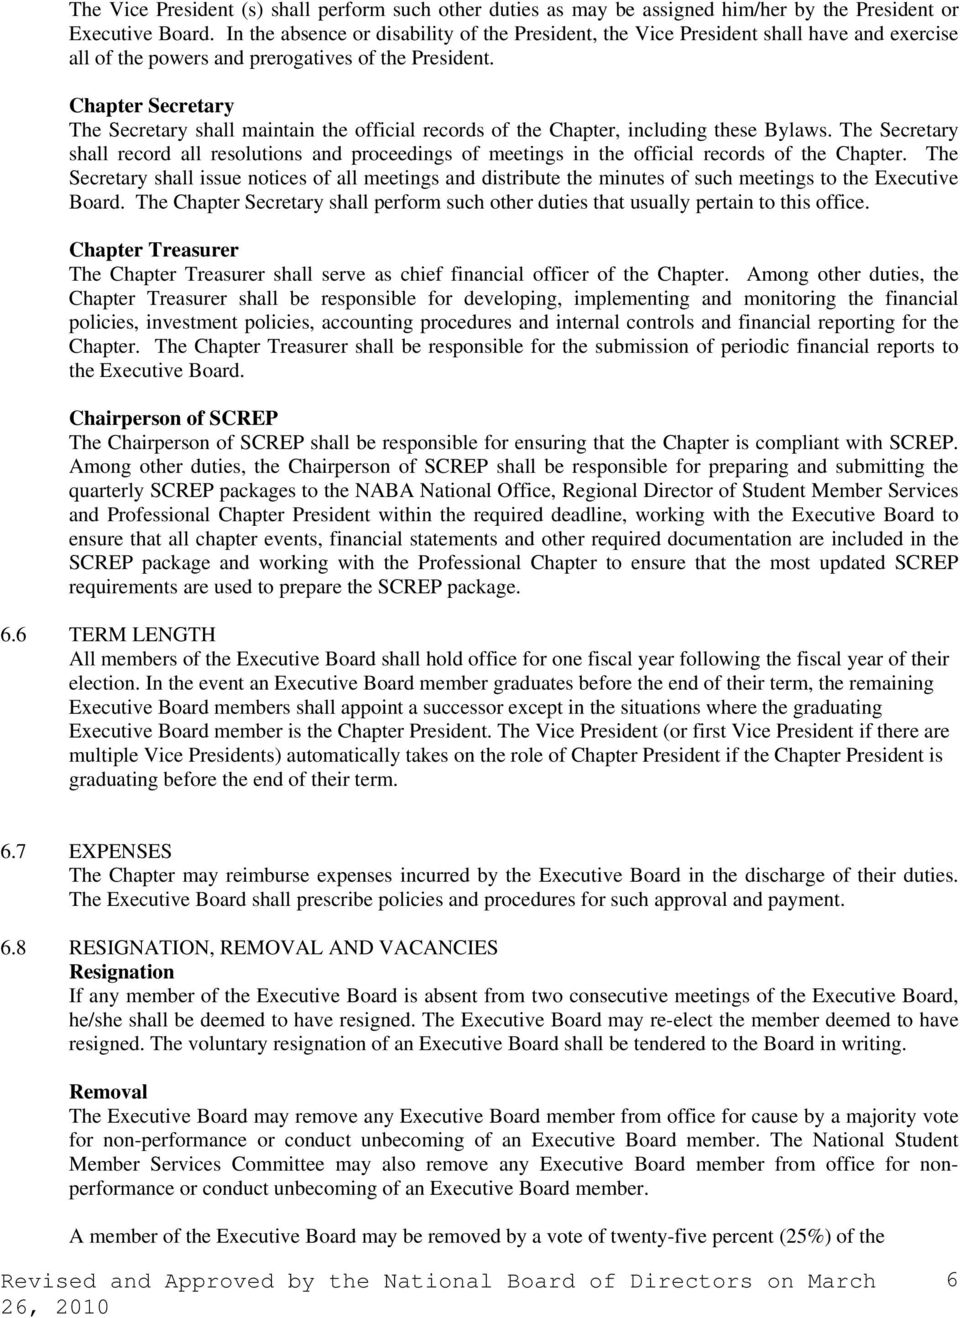 Chapter Secretary The Secretary shall maintain the official records of the Chapter, including these Bylaws.